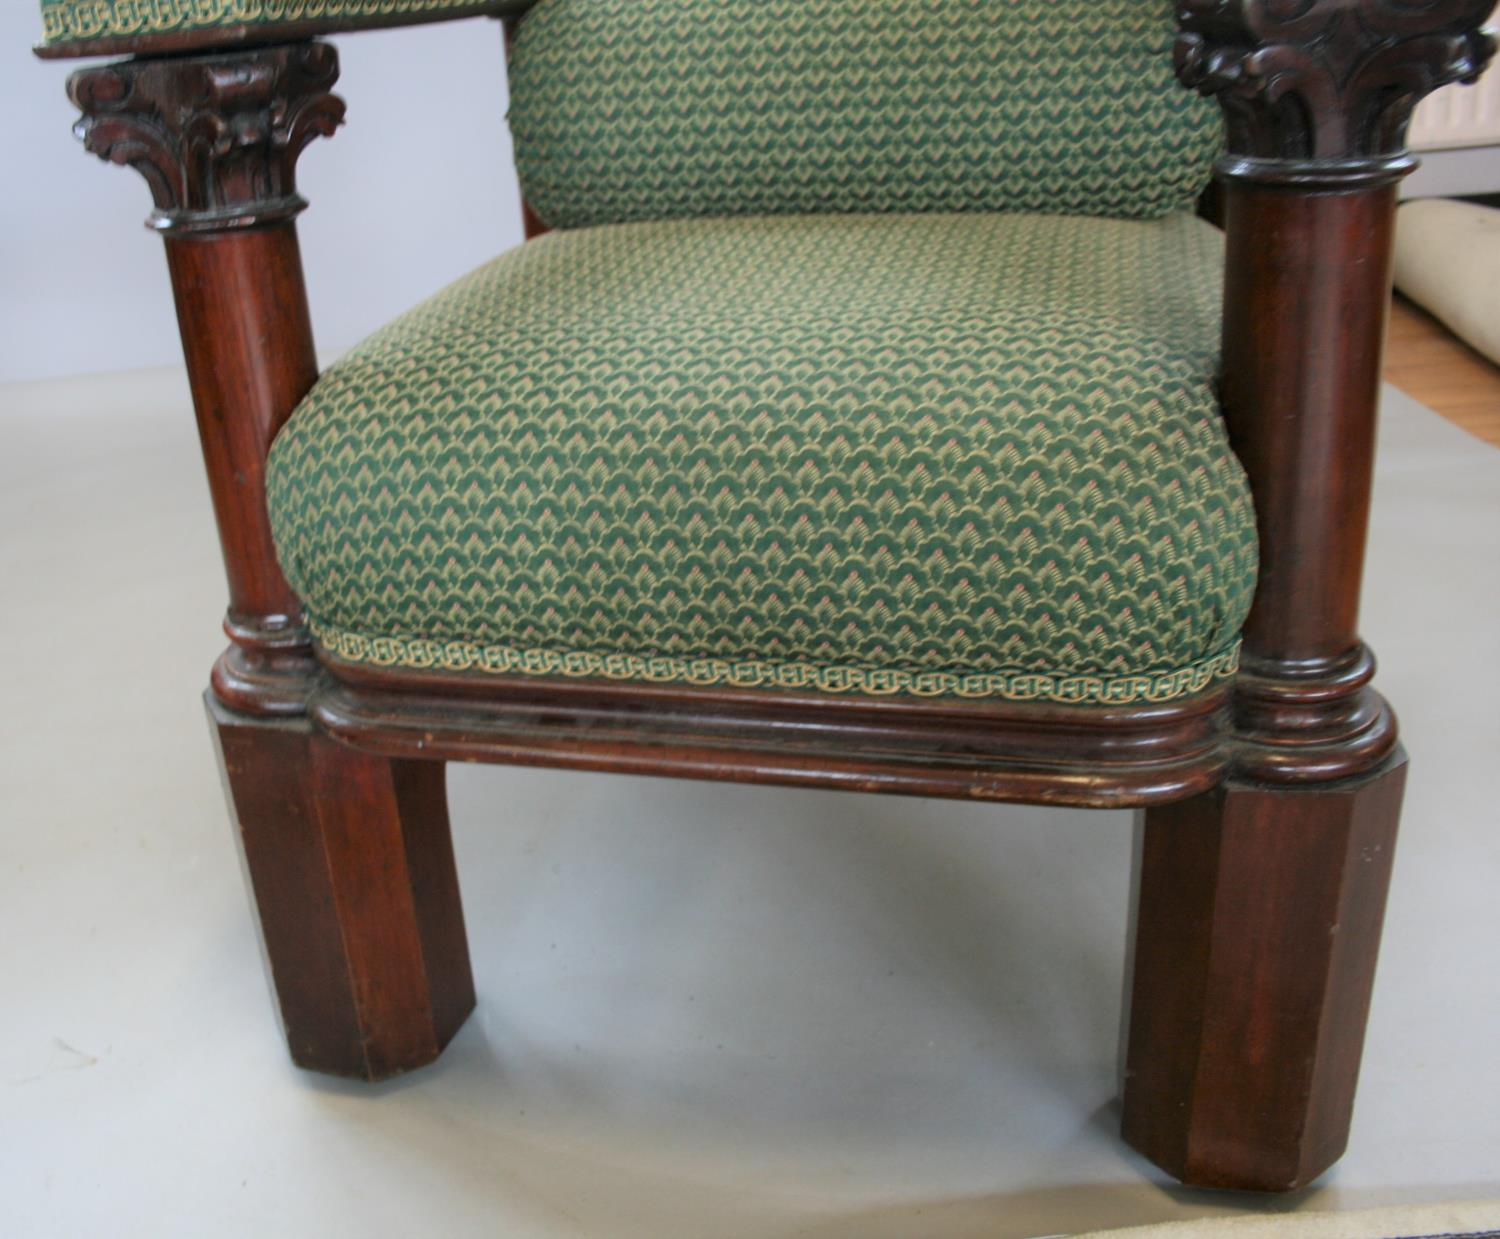 Exceptionally rare mahogany Irish throne chair, stamped Strahan of Dublin. 90W x 230H x 78D - Image 4 of 4